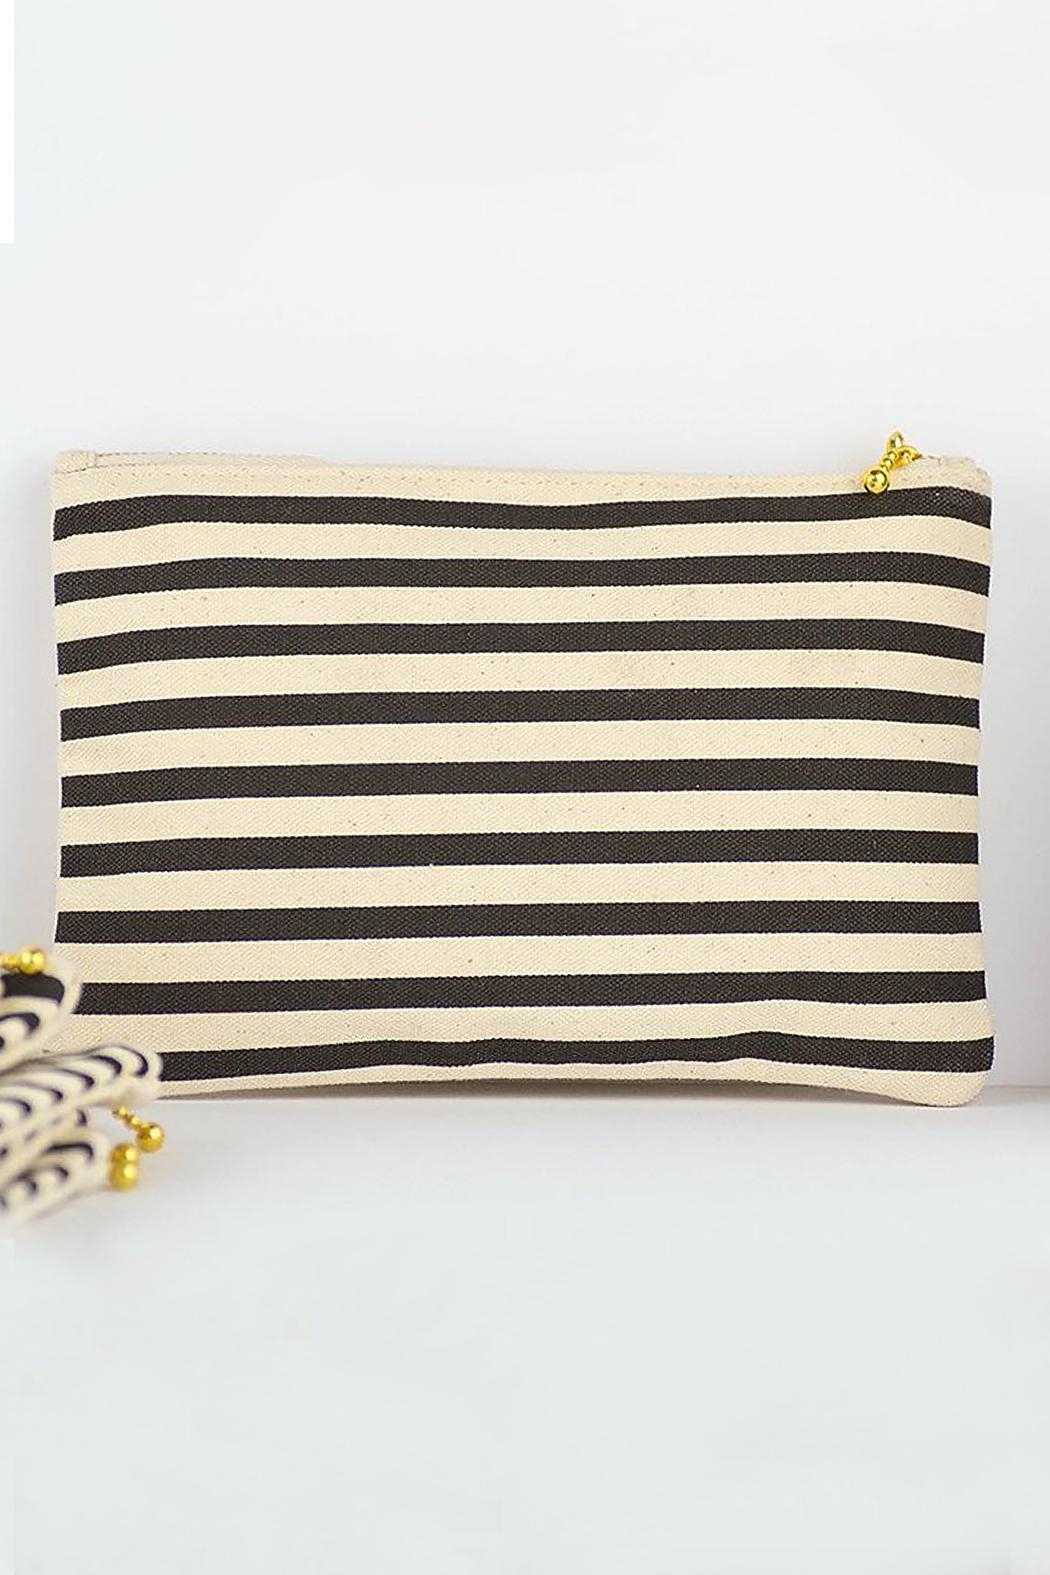 MERIWETHER Worry Eyebrow Zip-Pouch - Front Full Image